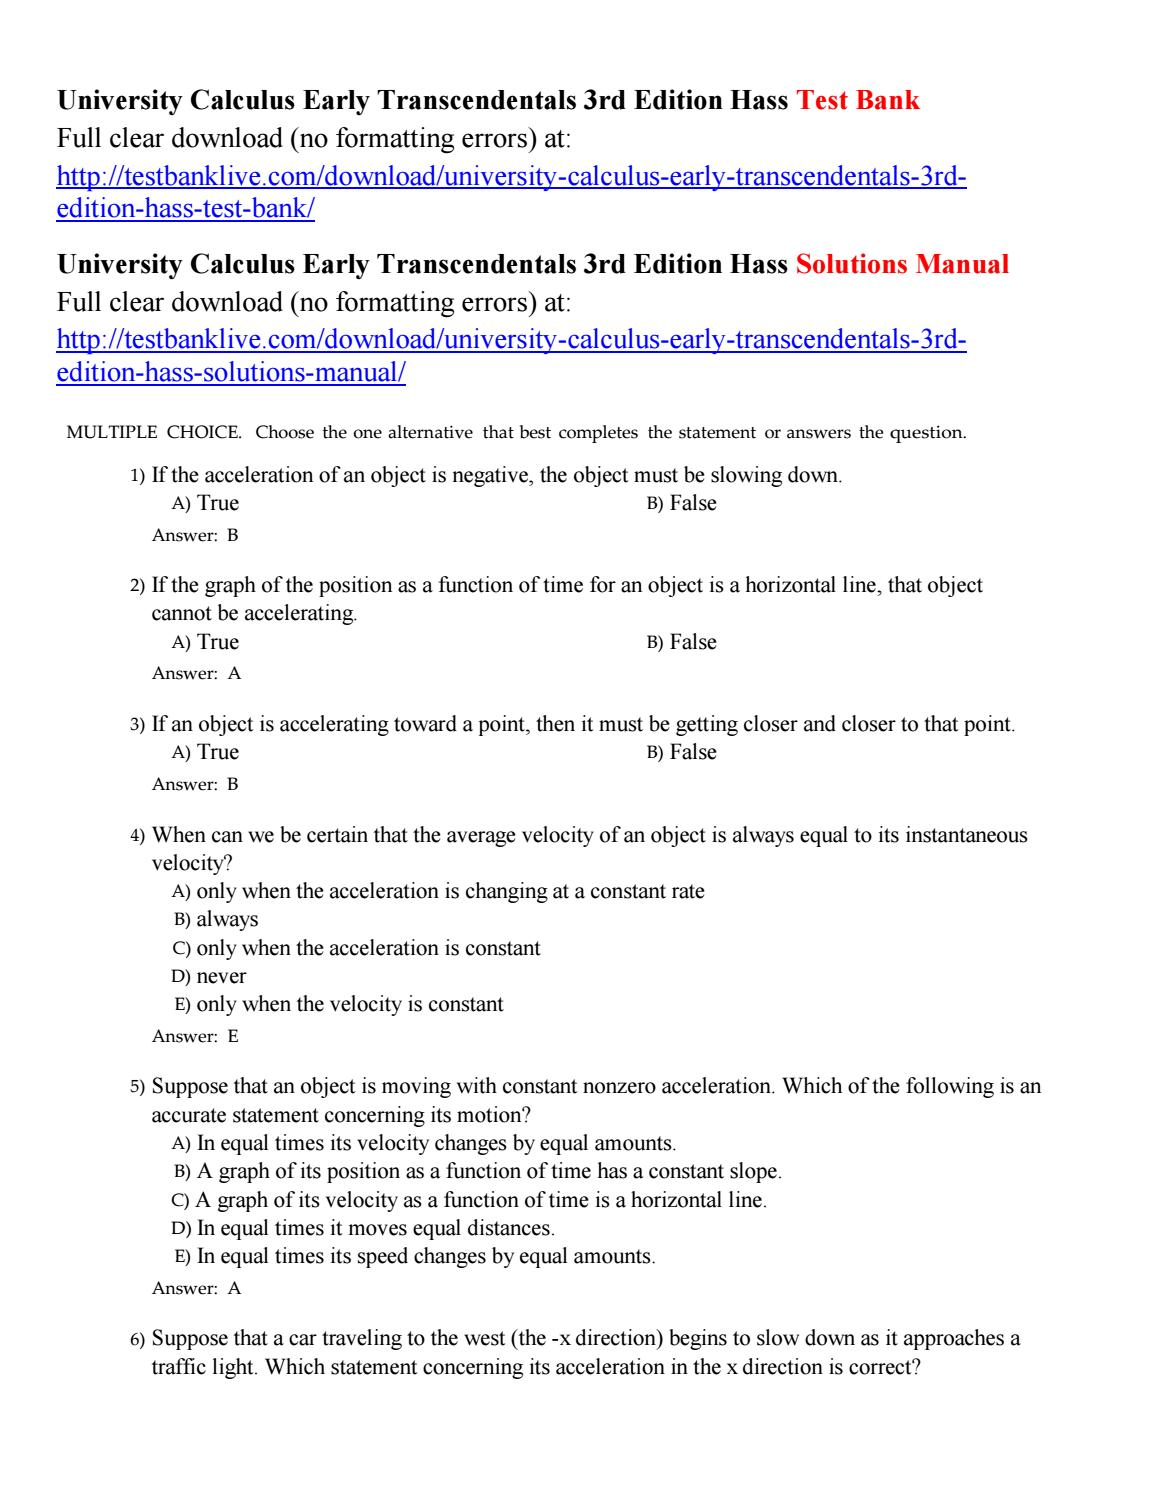 University calculus early transcendentals 3rd edition hass test bank by  Chapman49 - issuu